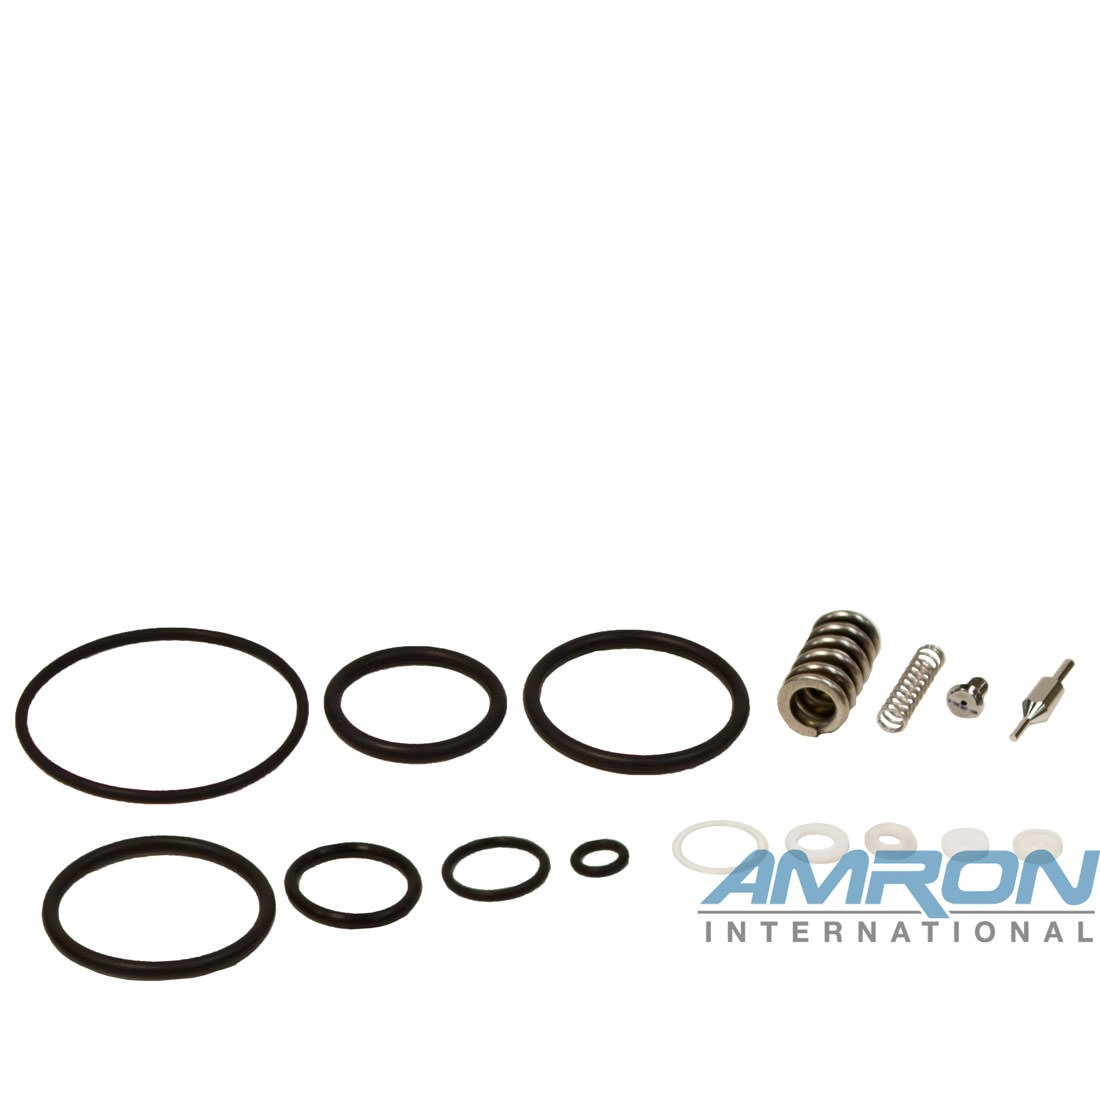 Tescom 389-1875 Regulator Repair Kit for 44-13XX-XXX1